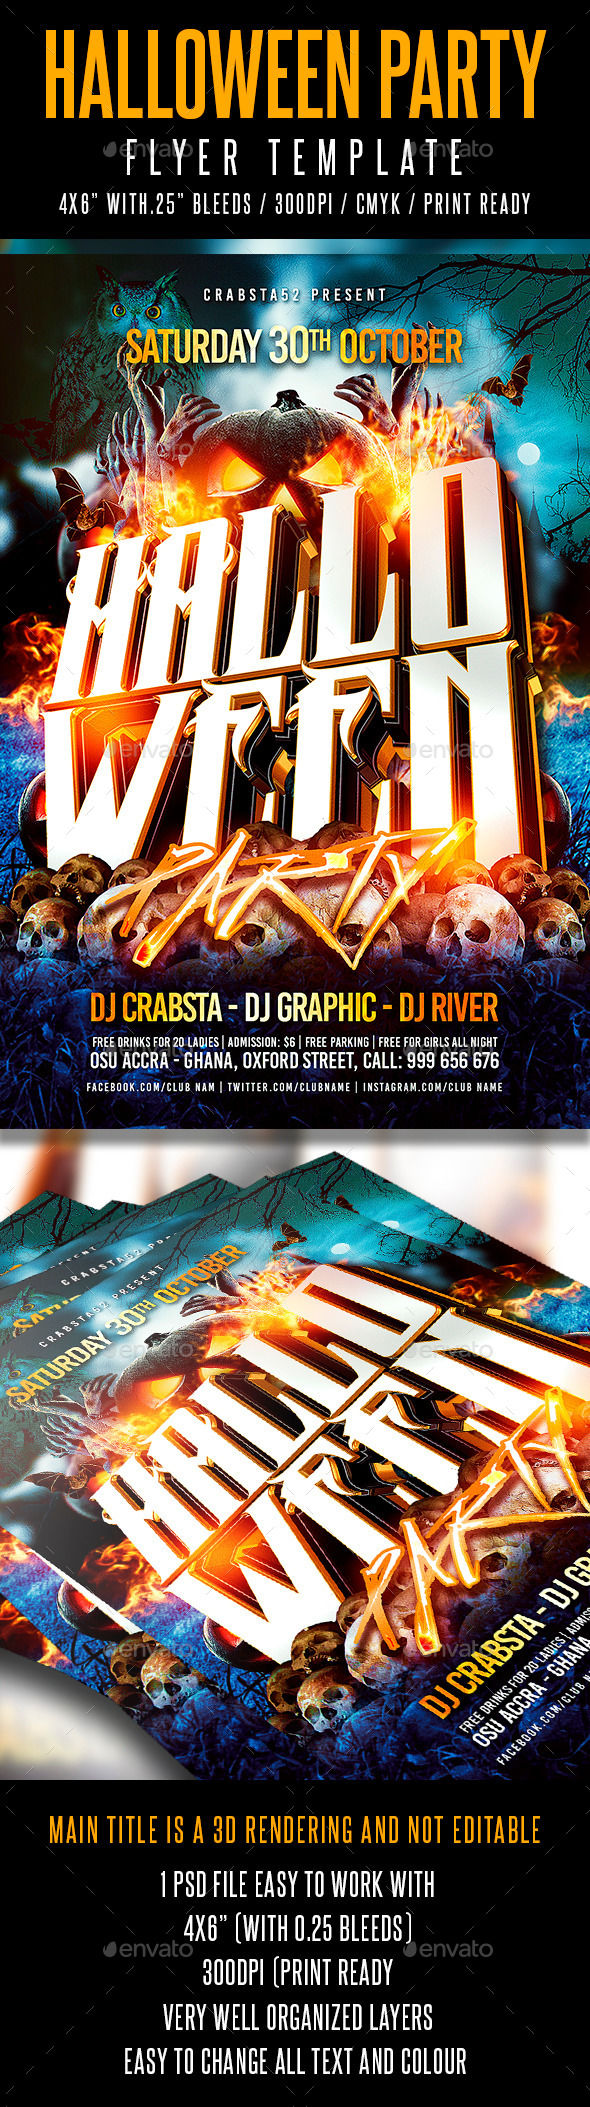 Halloween Party Flyer Template by Crabsta52 (Halloween party flyer)